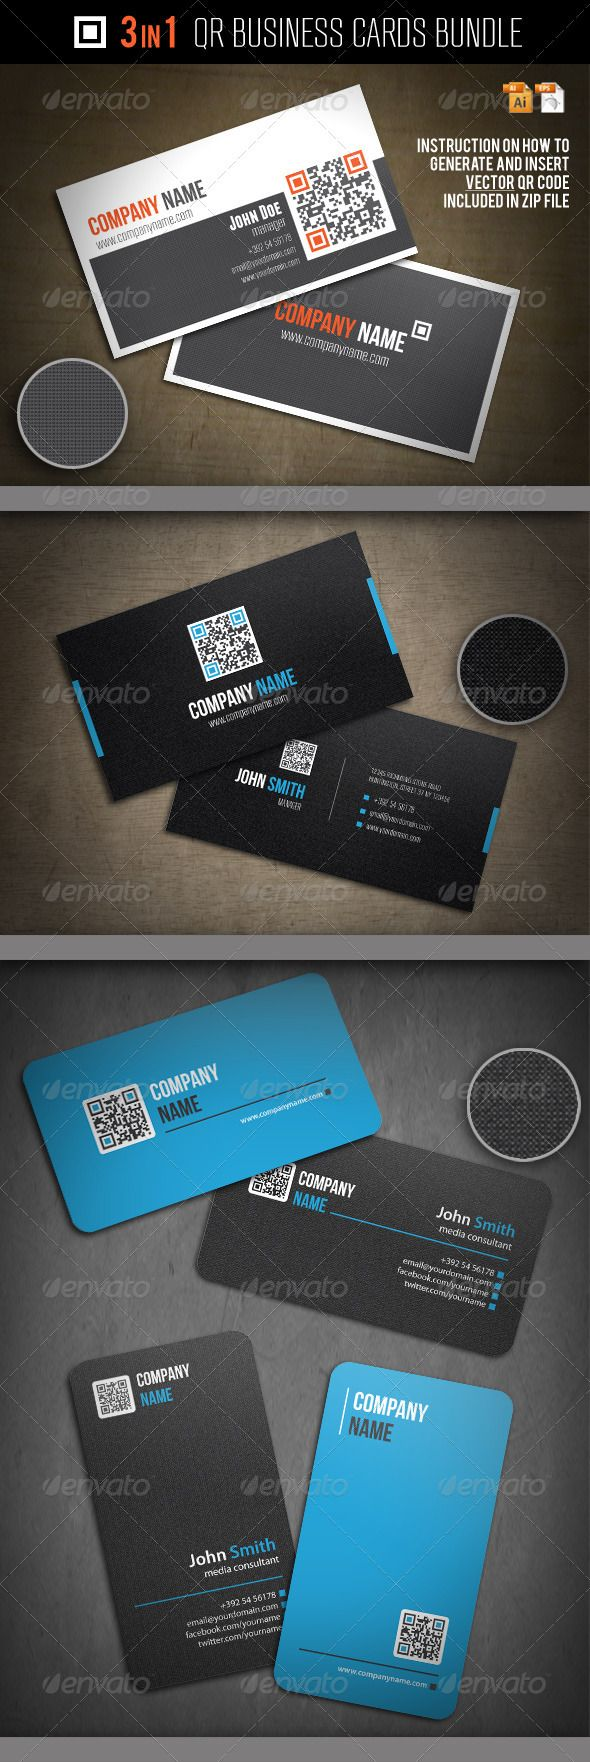 117 best business cards psd with qr code images on pinterest 3 in 1 qr business cards bundle colourmoves